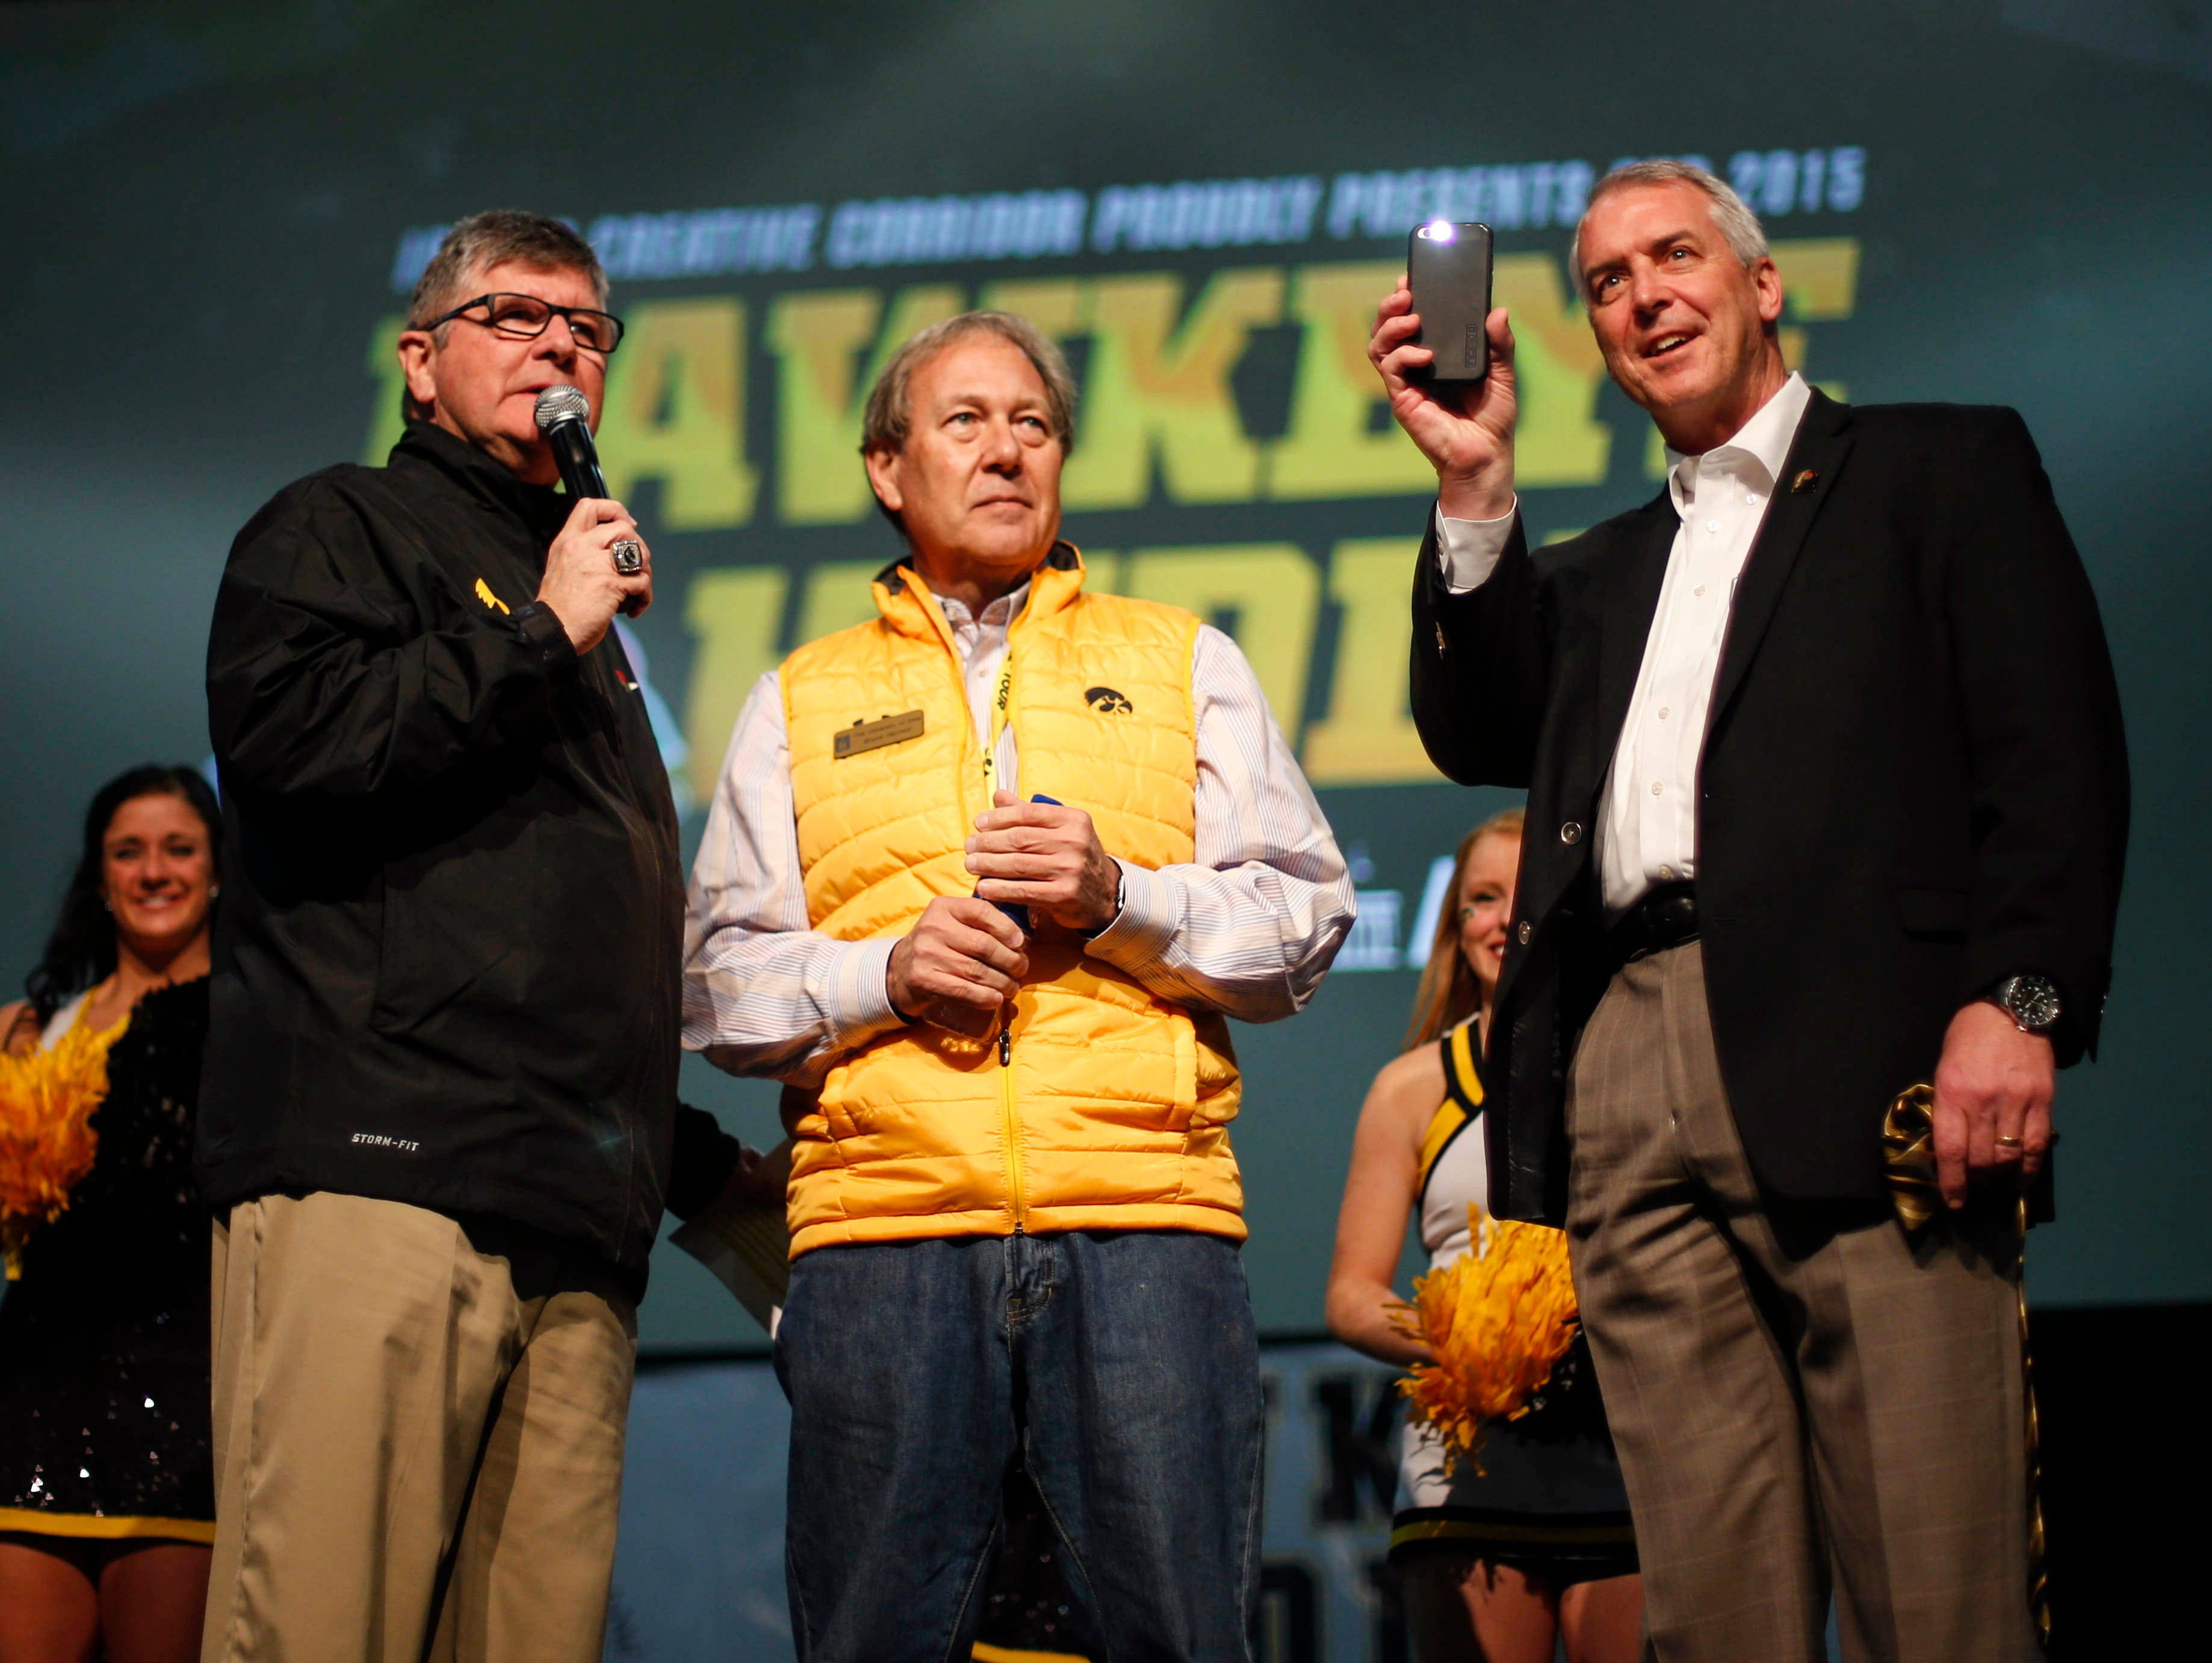 University of Iowa Athletic Director Gary Barta holds his cell phone with the flashlight lit, illustrating the new trend at the start of the fourth quarter during Iowa Hawkeye football games. Barta, joined by president Bruce Herreld, center, and Gary Dolphin, spoke during the Hawkeye Huddle at the Los Angeles Convention Center on Wednesday, Dec. 30, 2015, in Los Angeles, Calif.